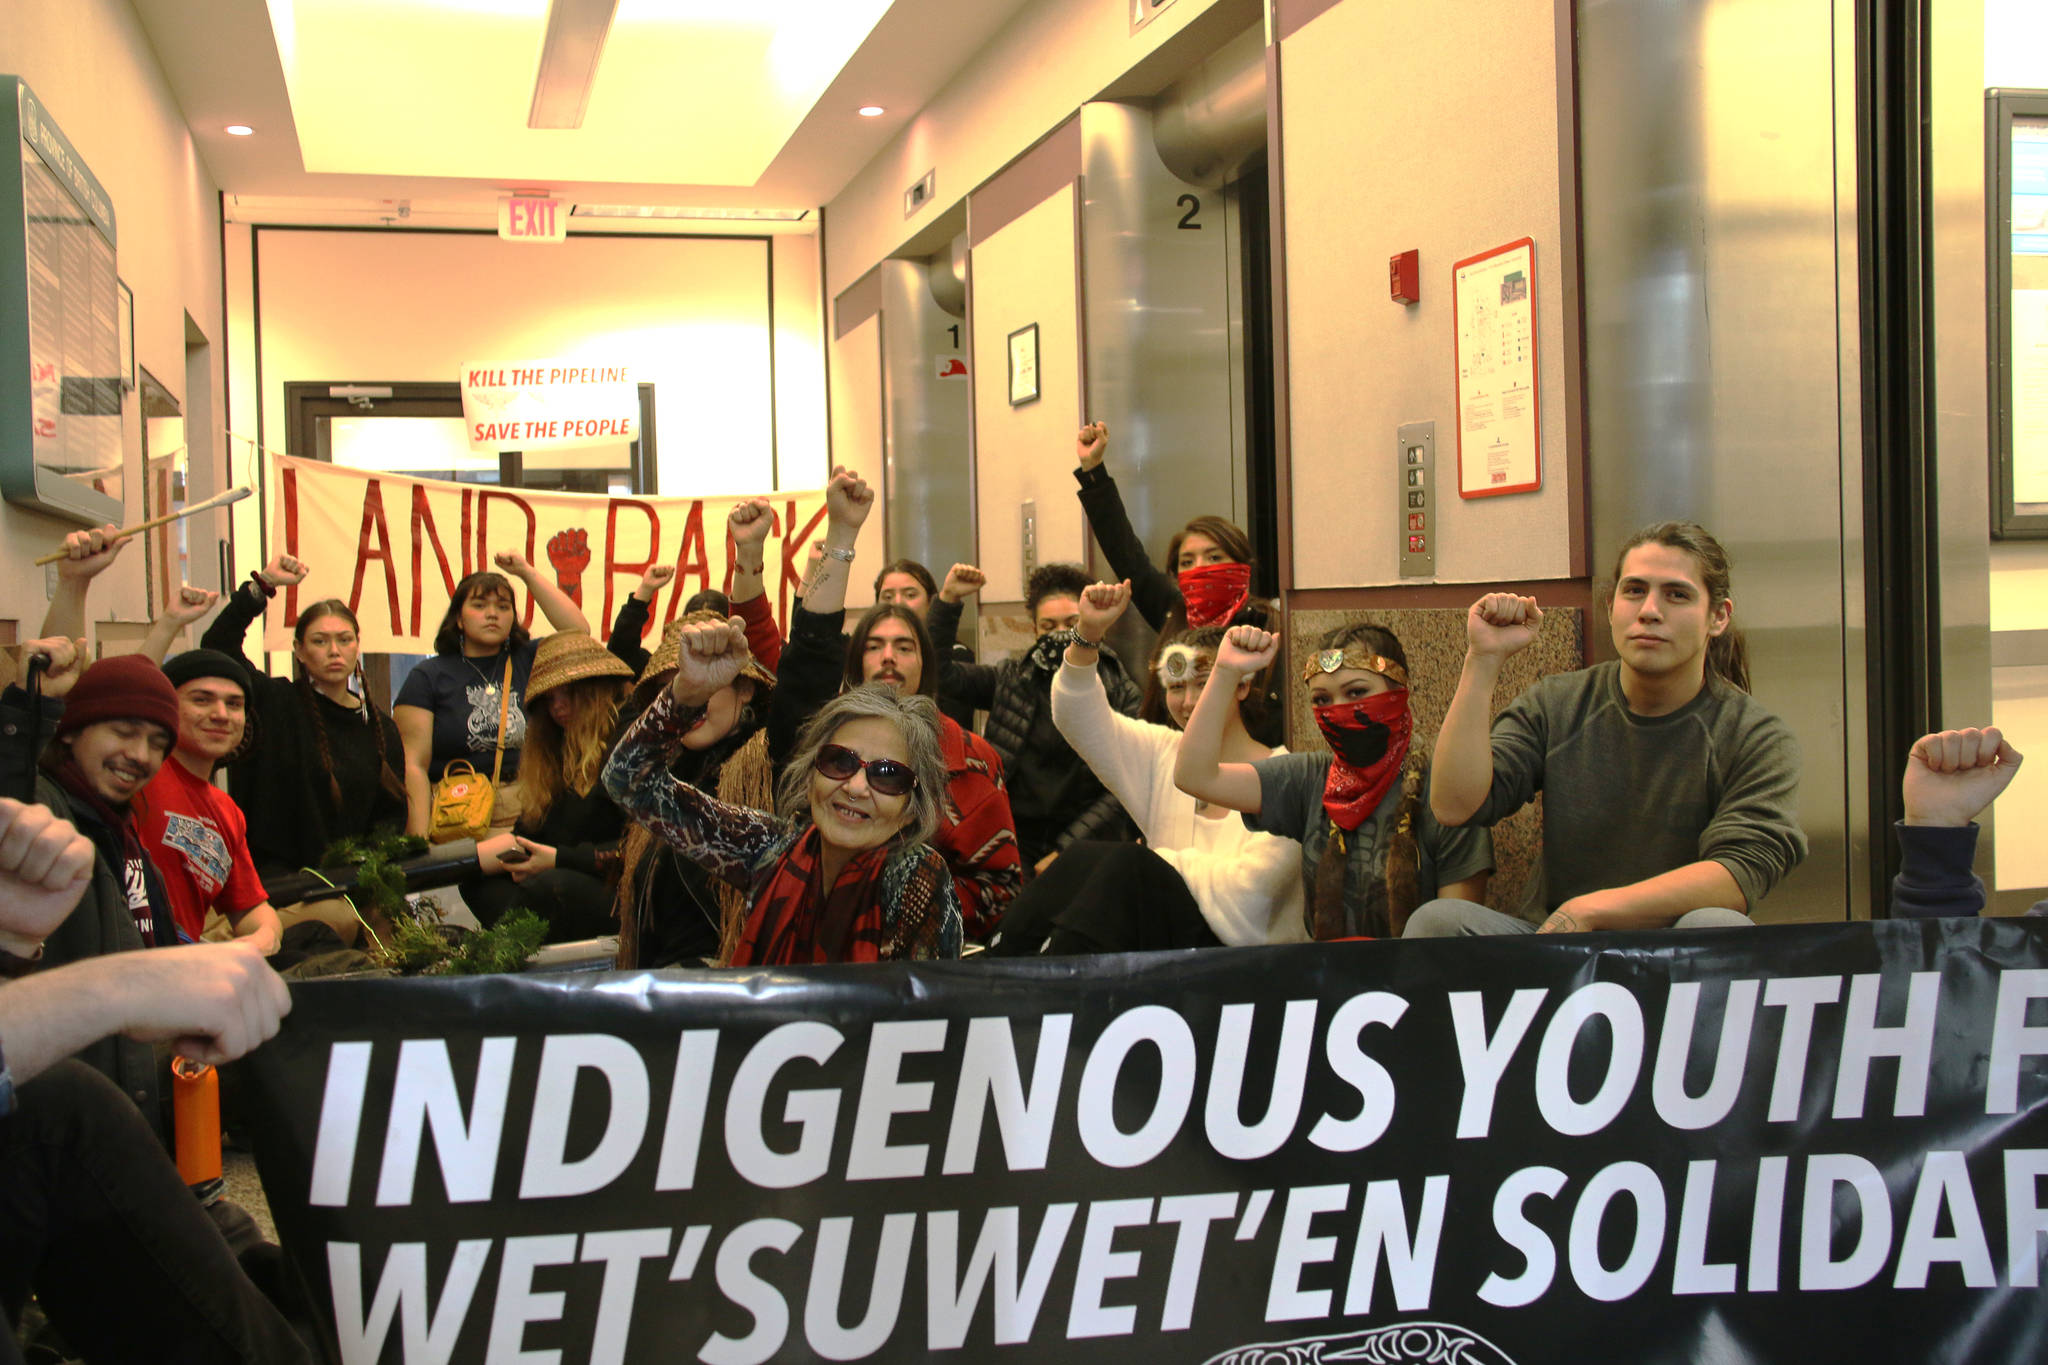 A group of about 20 protesters blocked the entrance to the Minsitry of Energy, Mines and Petroleum Resources building in Victoria on Tuesday in a show of solidarity for the Wet'suwet'en First Nation. (Kendra Crighton/News Staff)